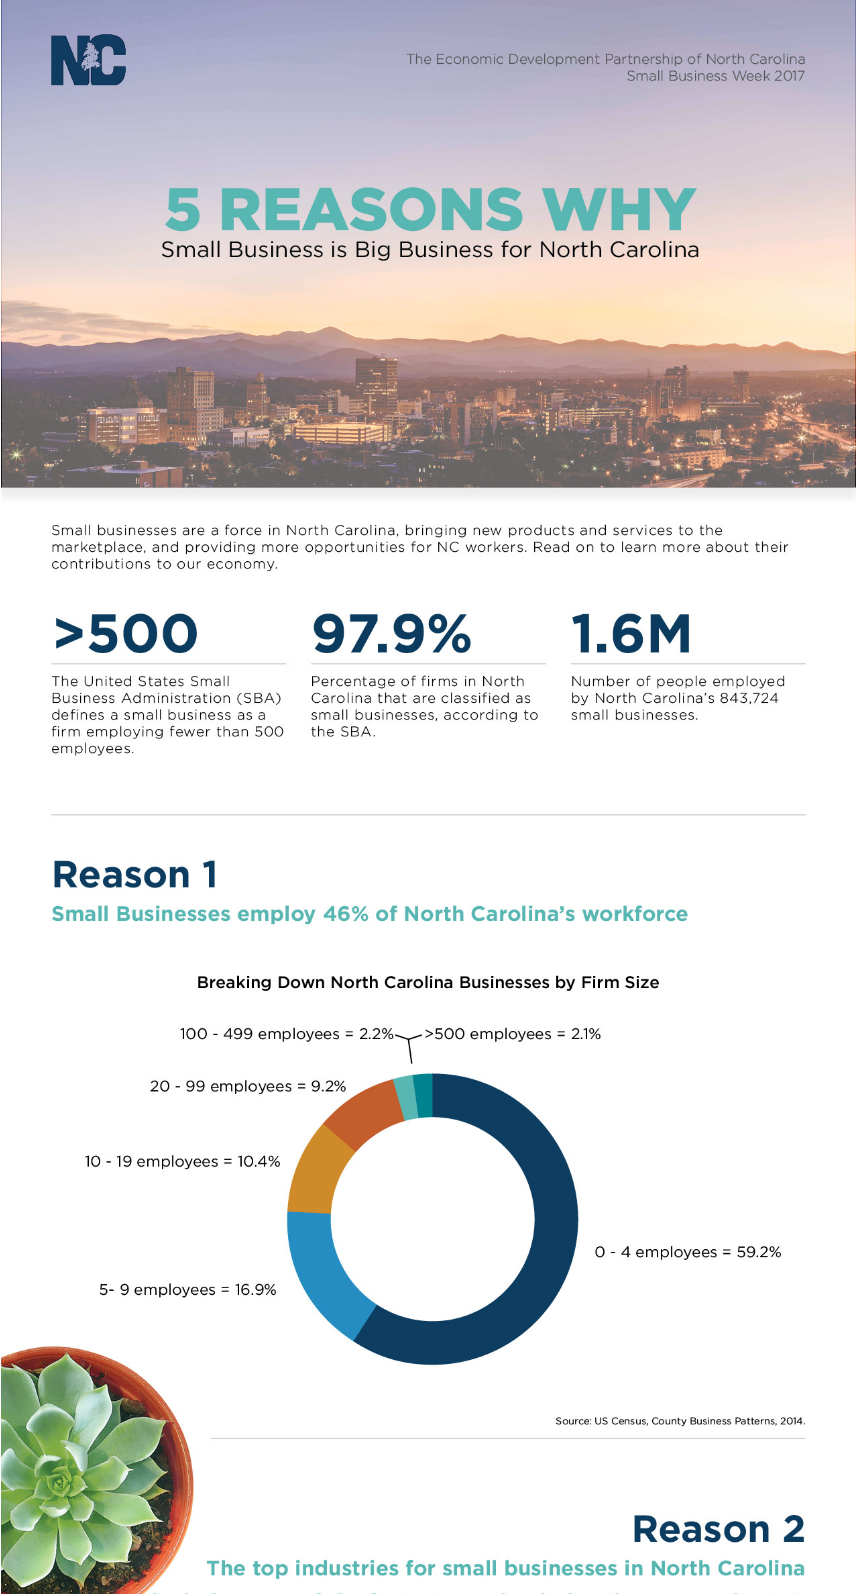 5 Reasons Small Business is Big Business for North Carolina